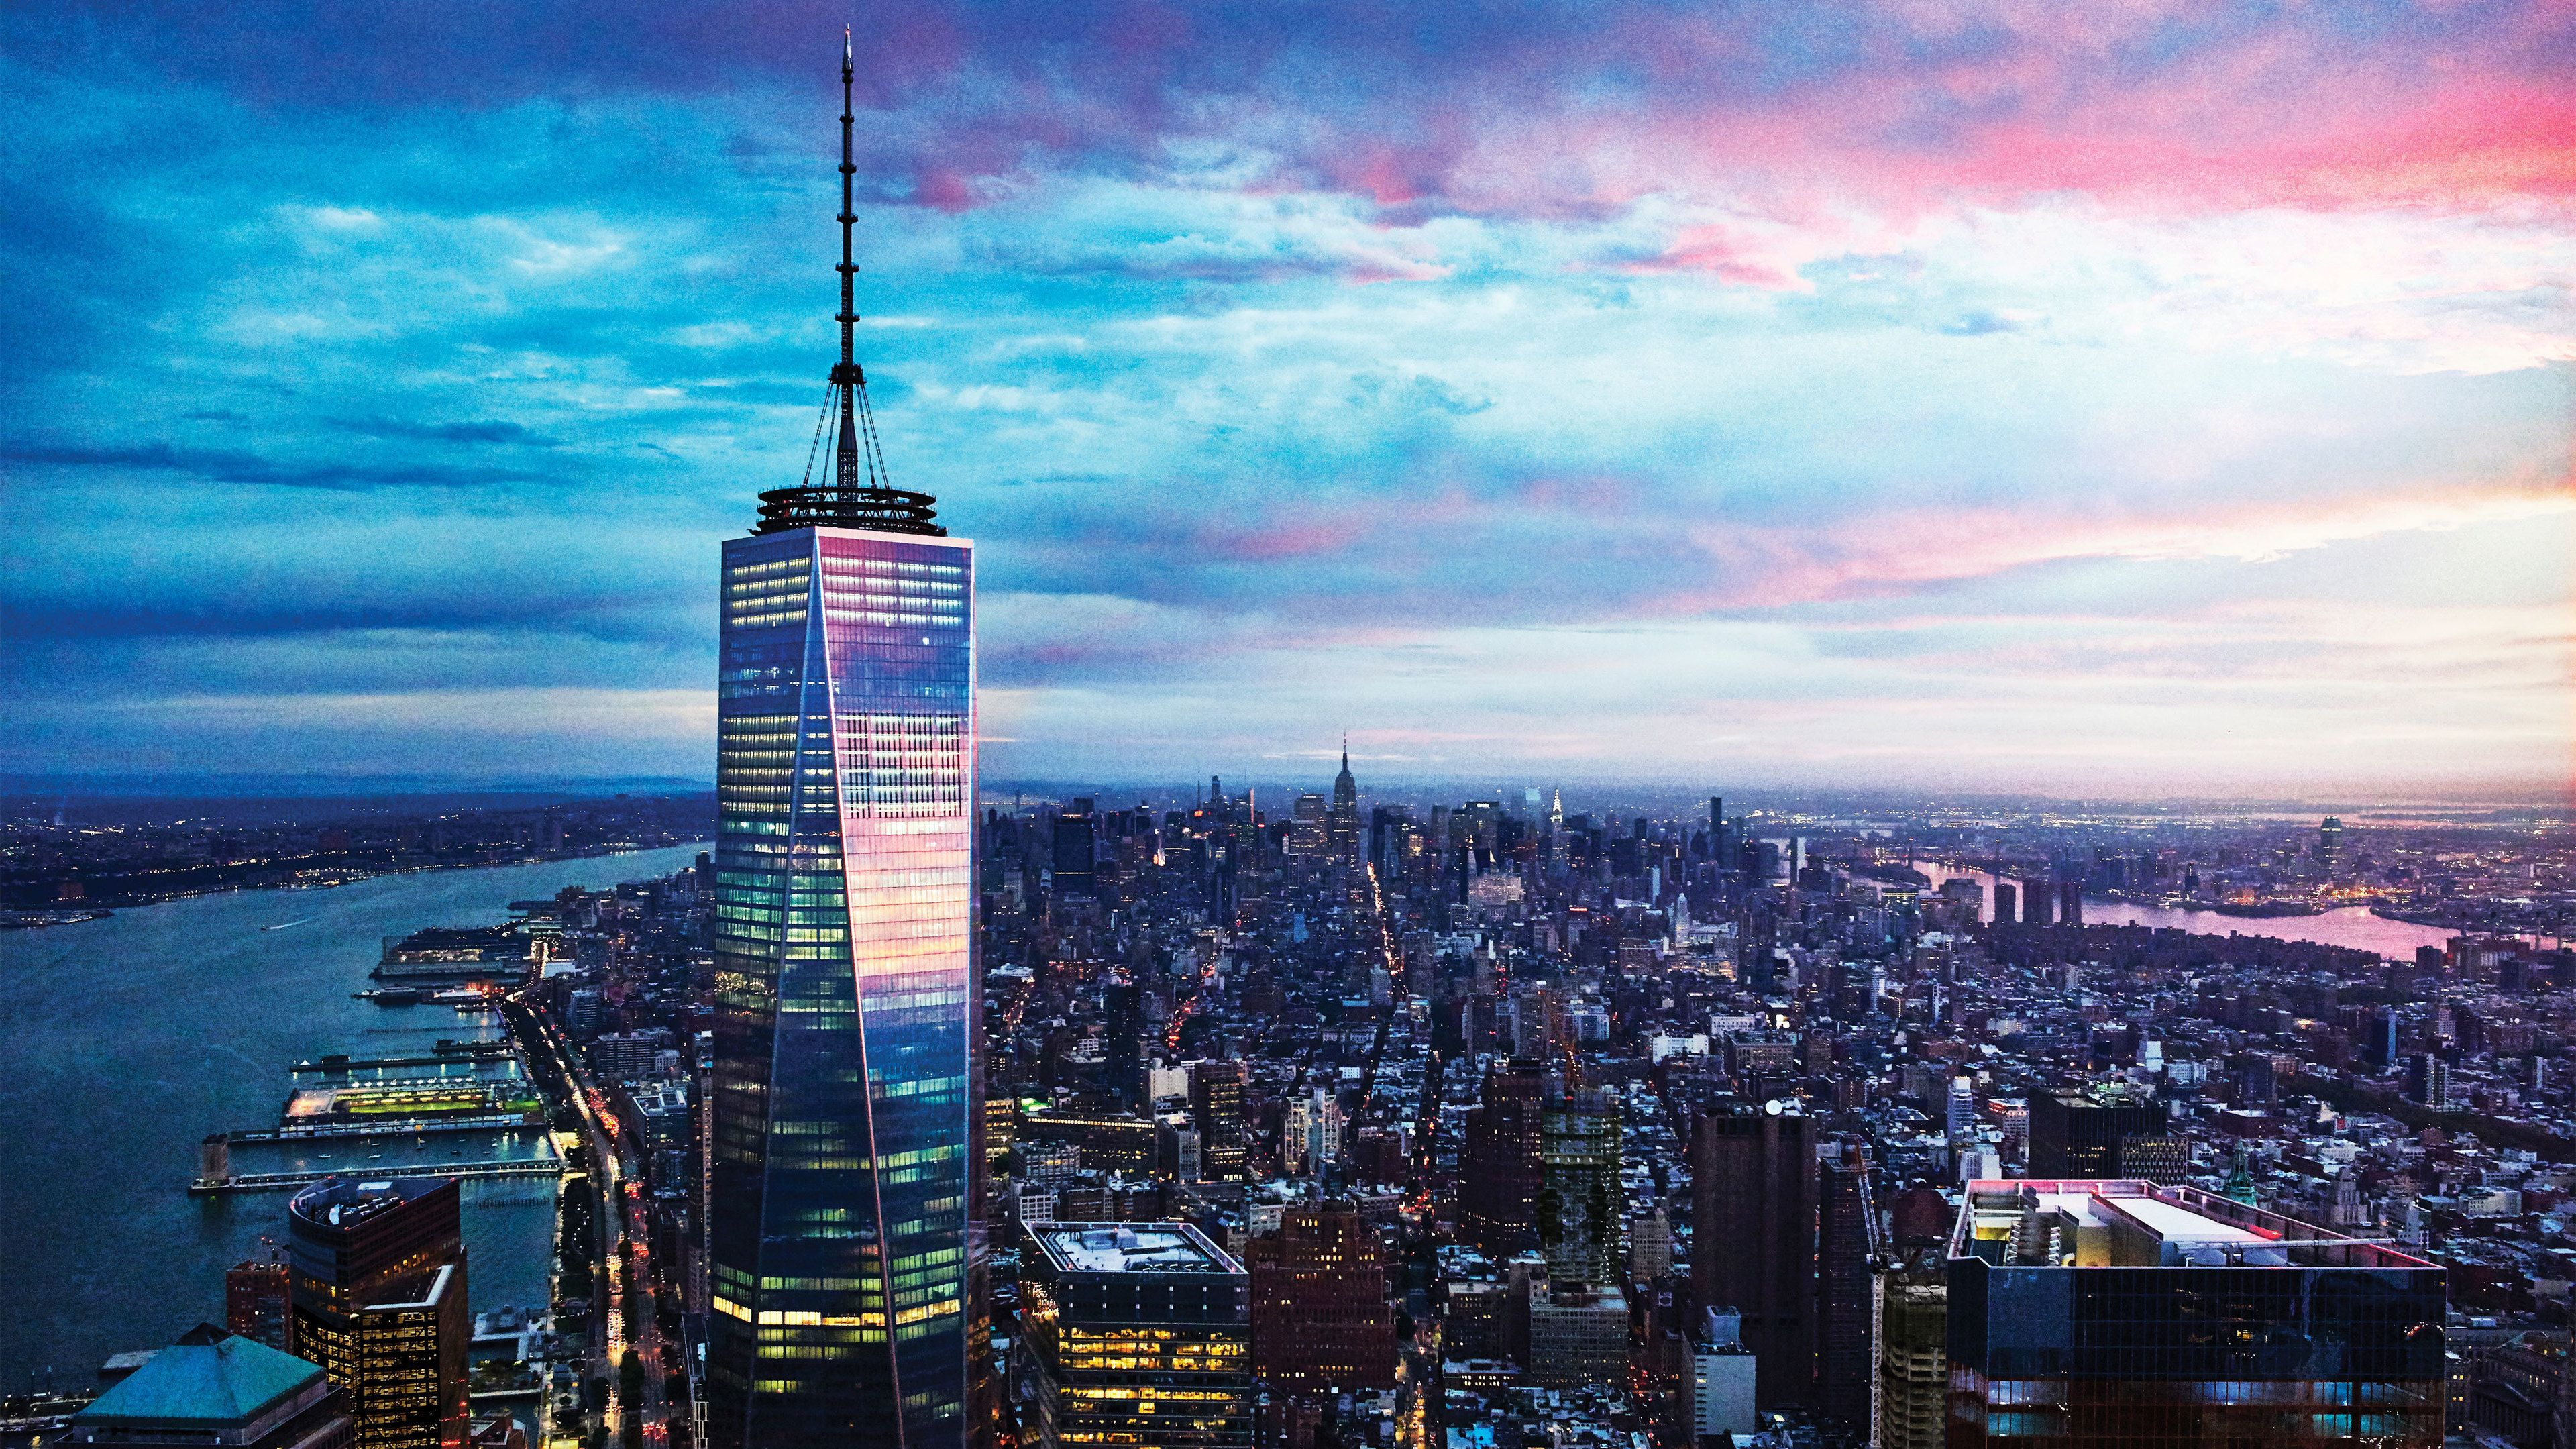 View of One World Observatory and the surrounding city in New York